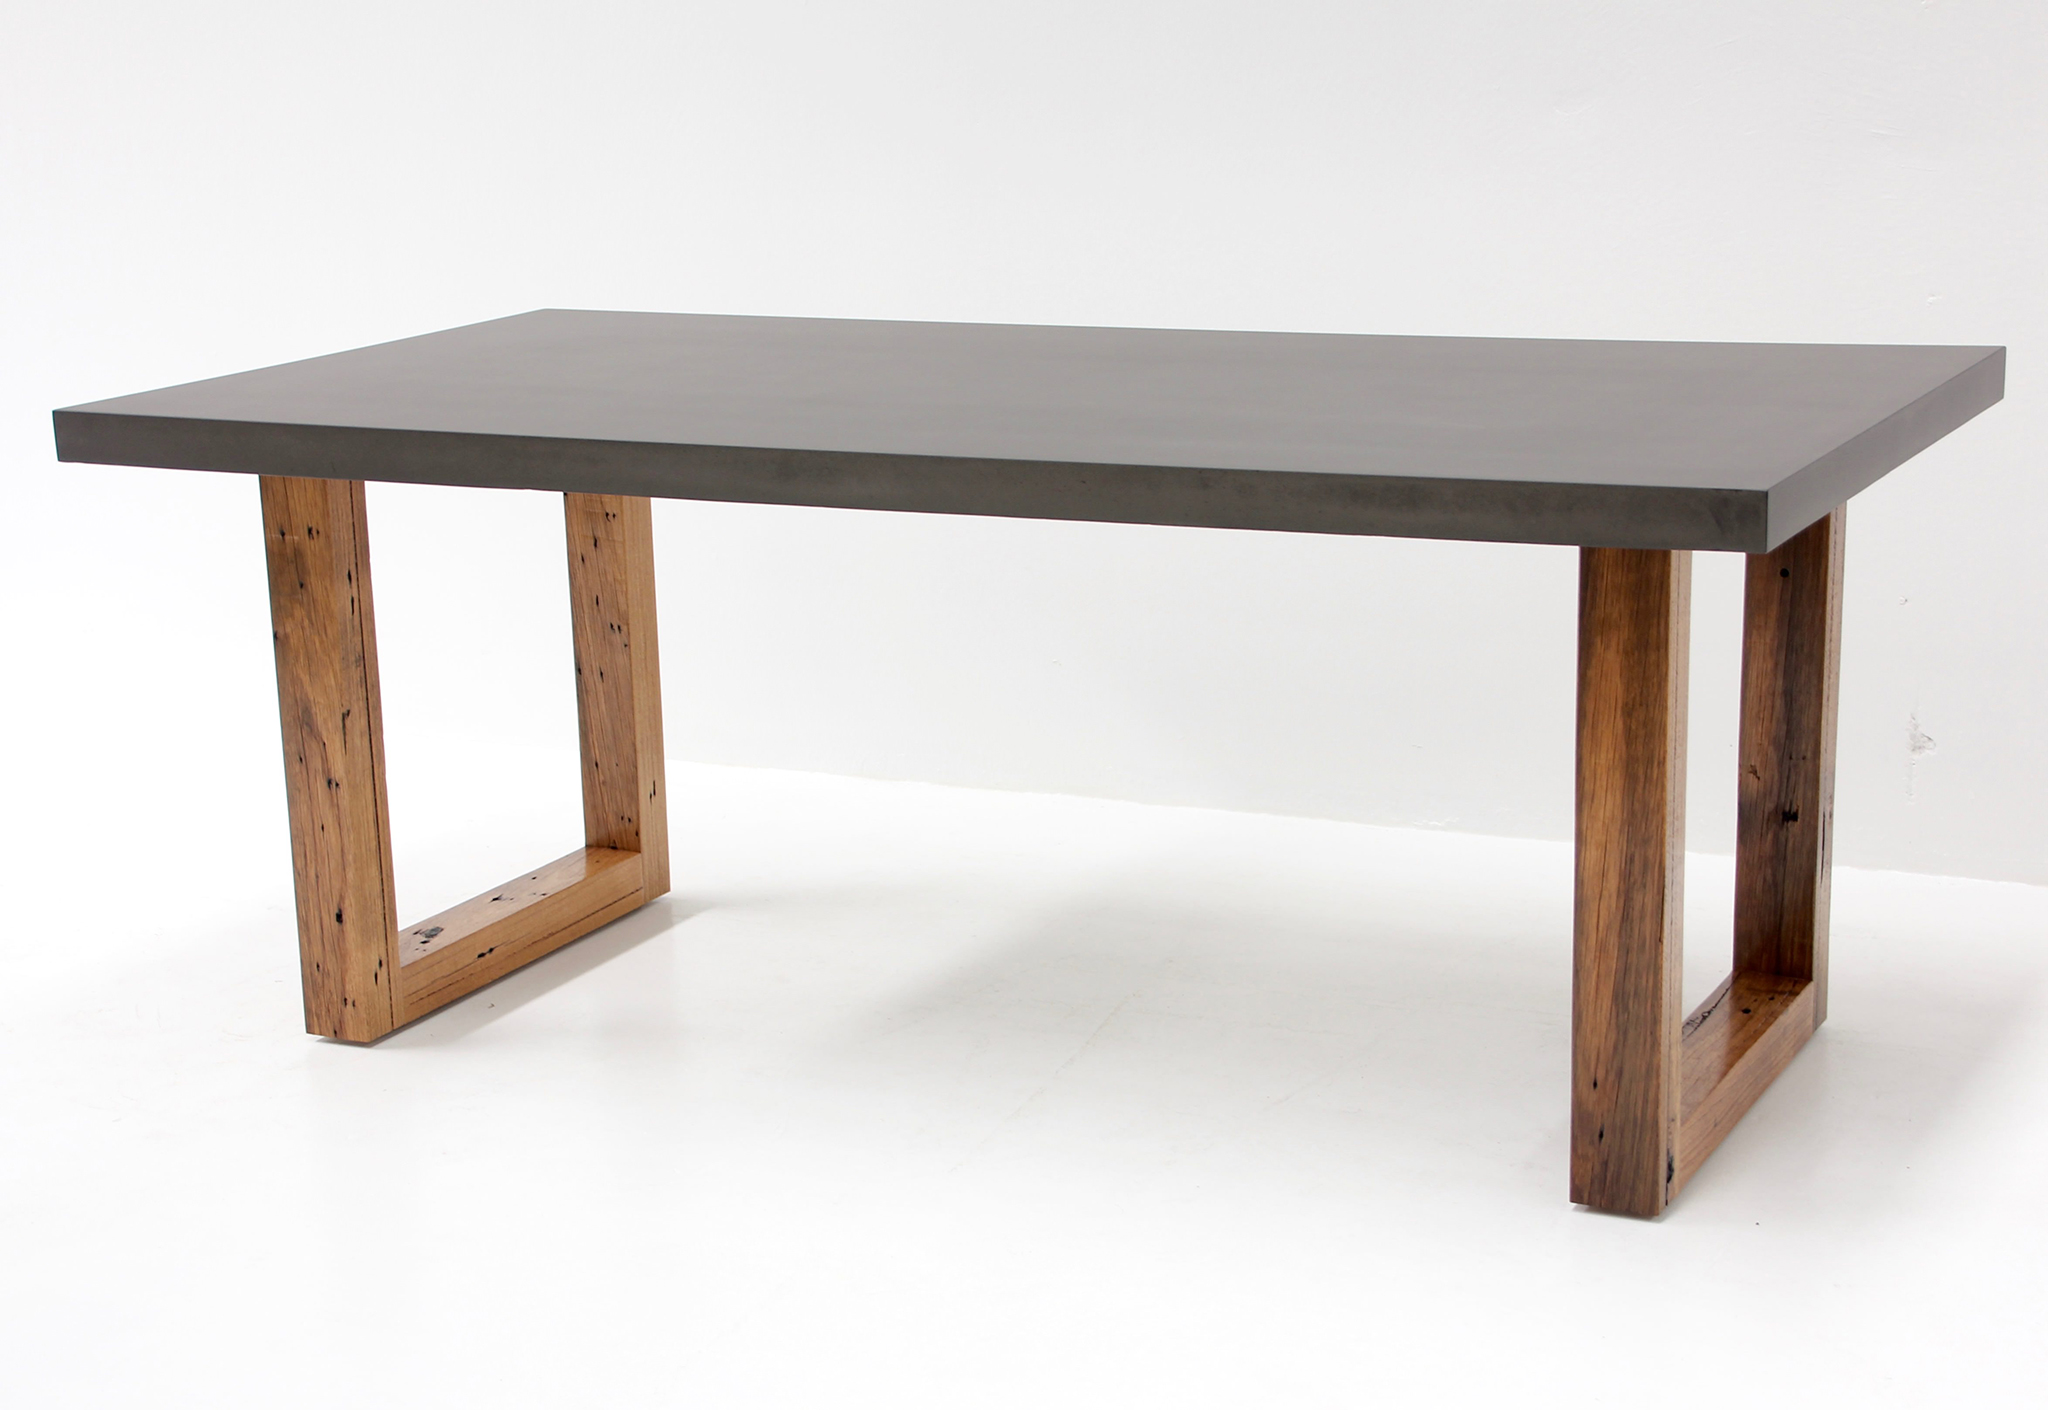 concrete table with hardwood legs. Black Bedroom Furniture Sets. Home Design Ideas